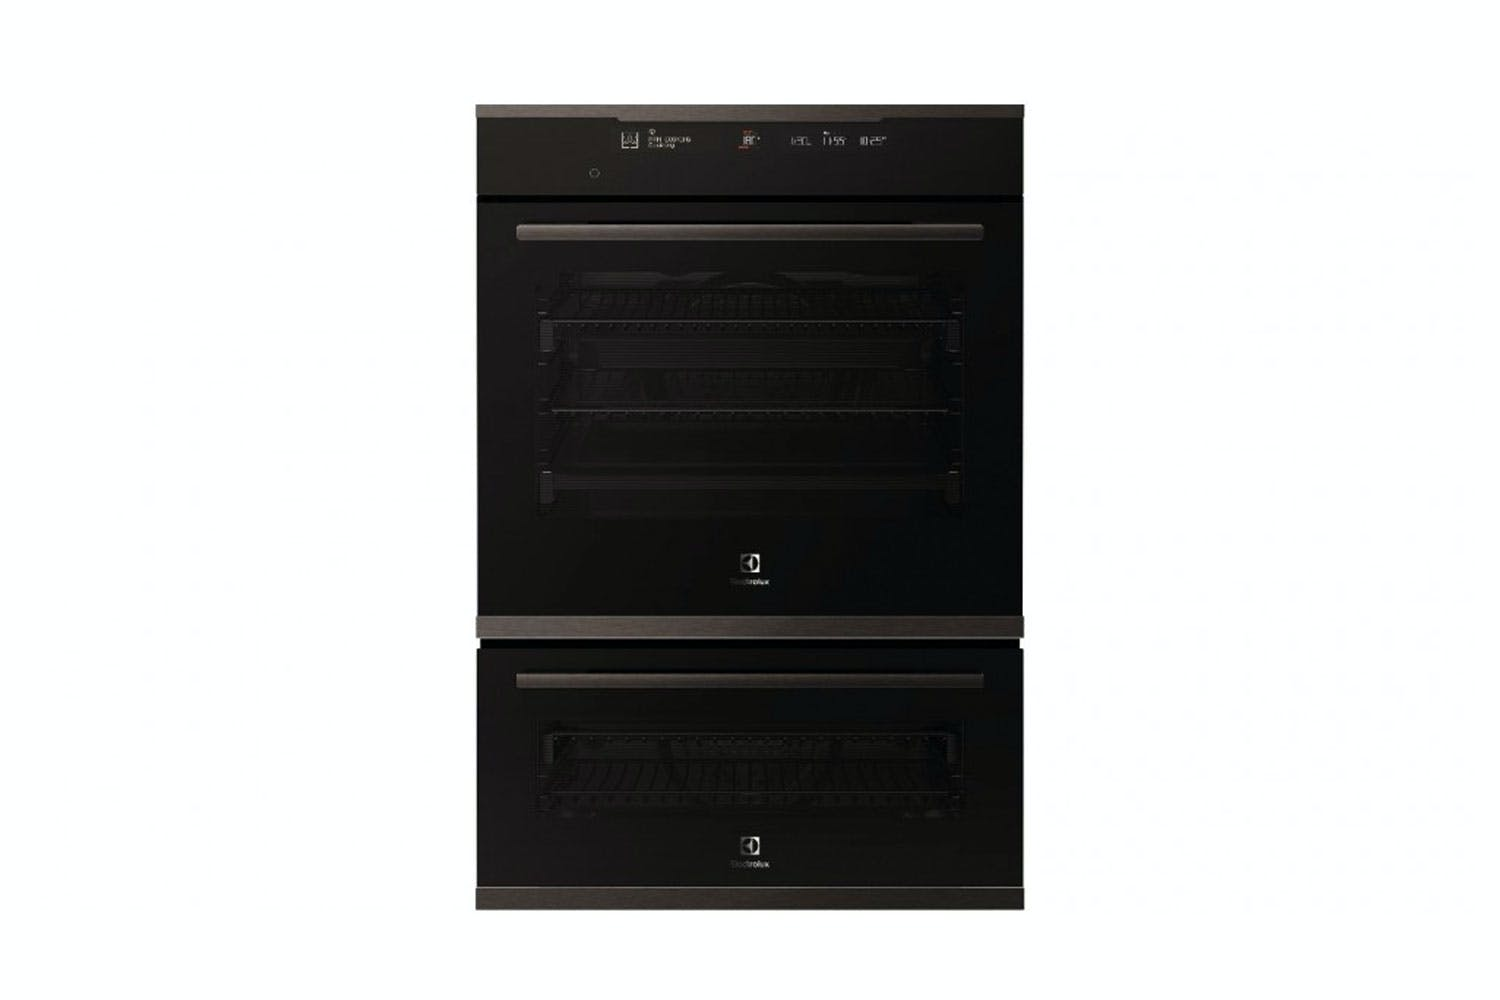 Image of Electrolux 60cm Multifunction Duo Oven